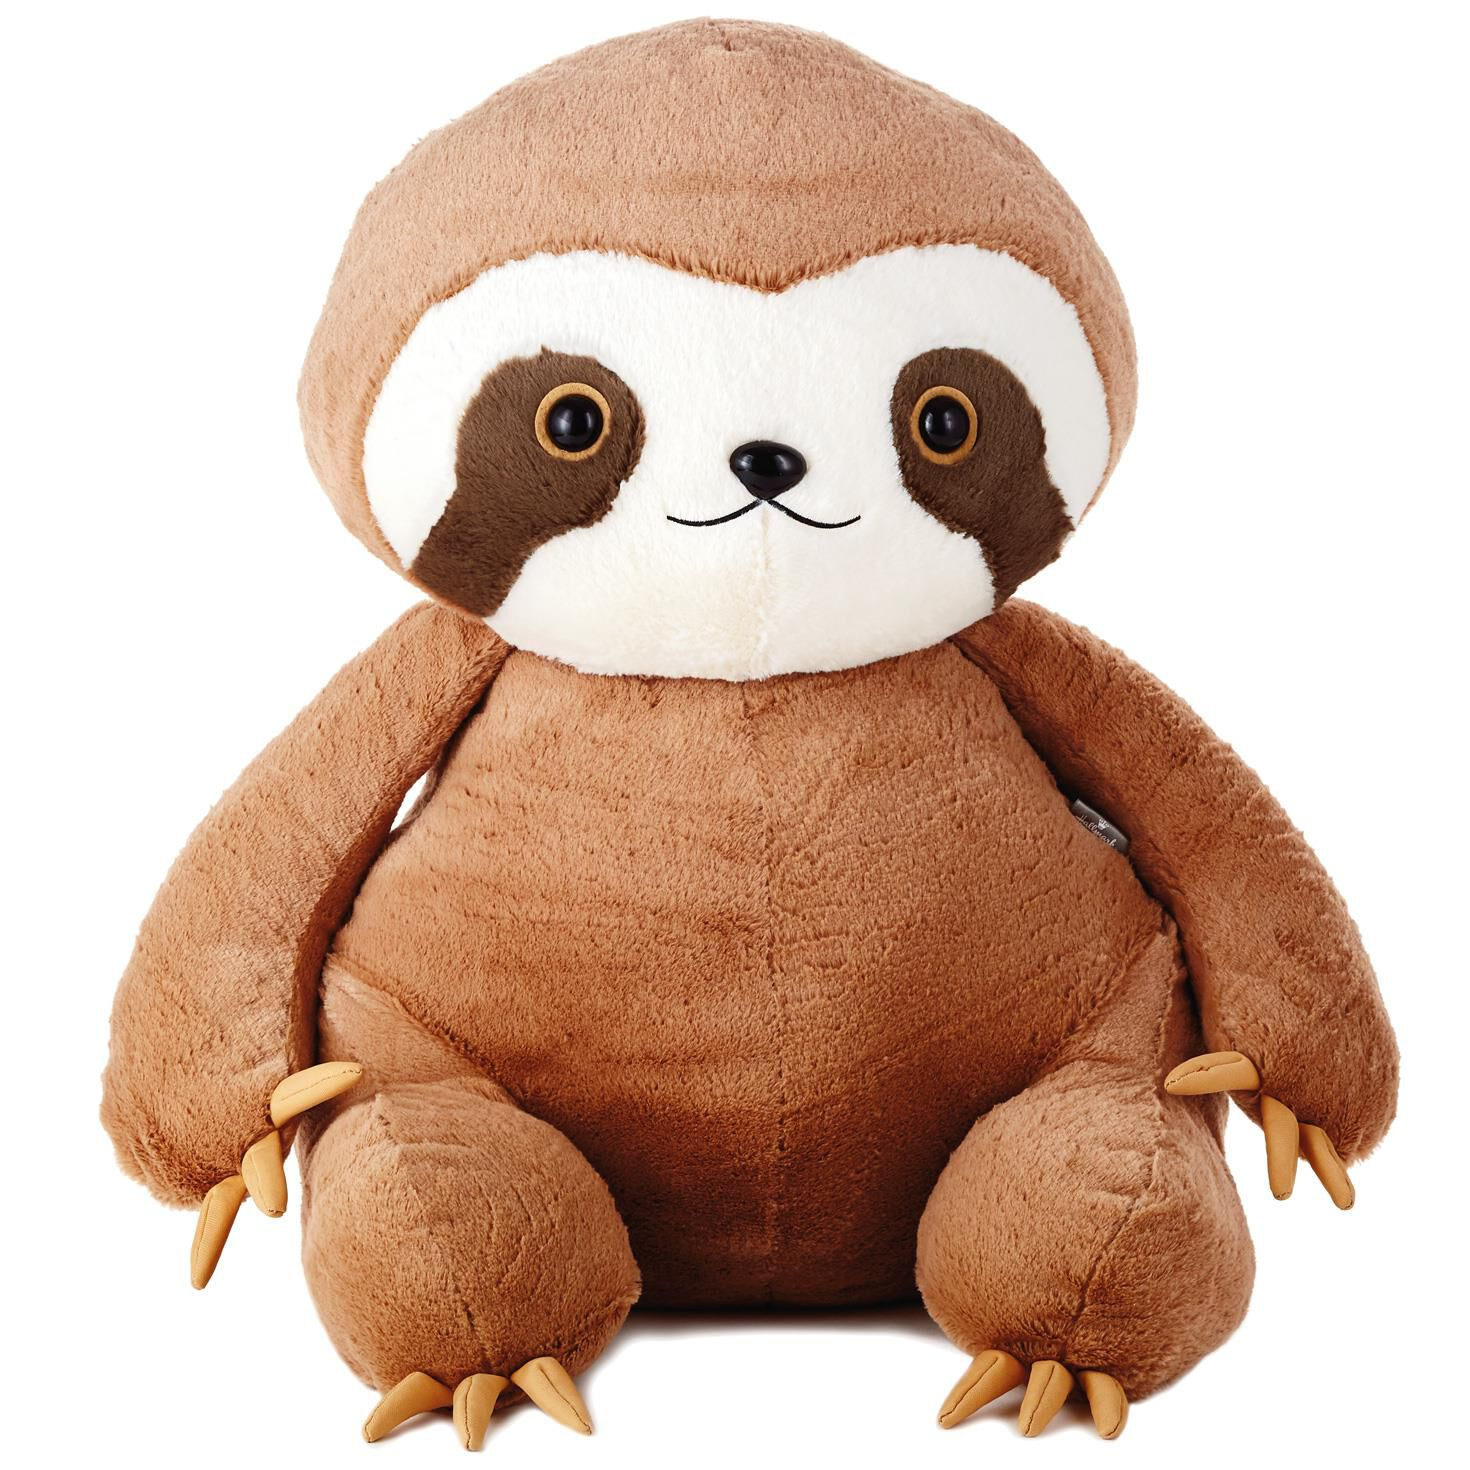 Baby Sloth Giant Stuffed Animal 30 Classic Stuffed Animals